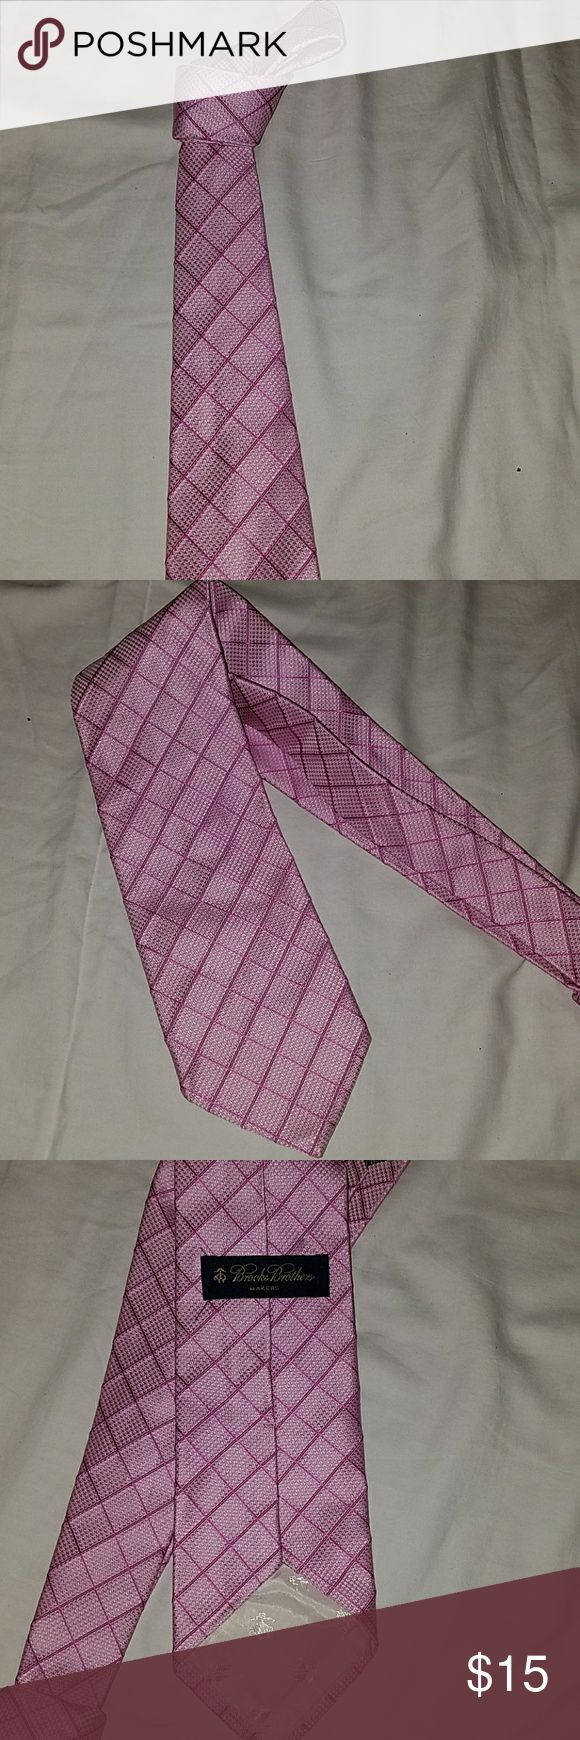 Brooks Brother Tie Brooks Brothers pink silk tie like new no stains or Mark's Brooks Brothers Accessories Ties